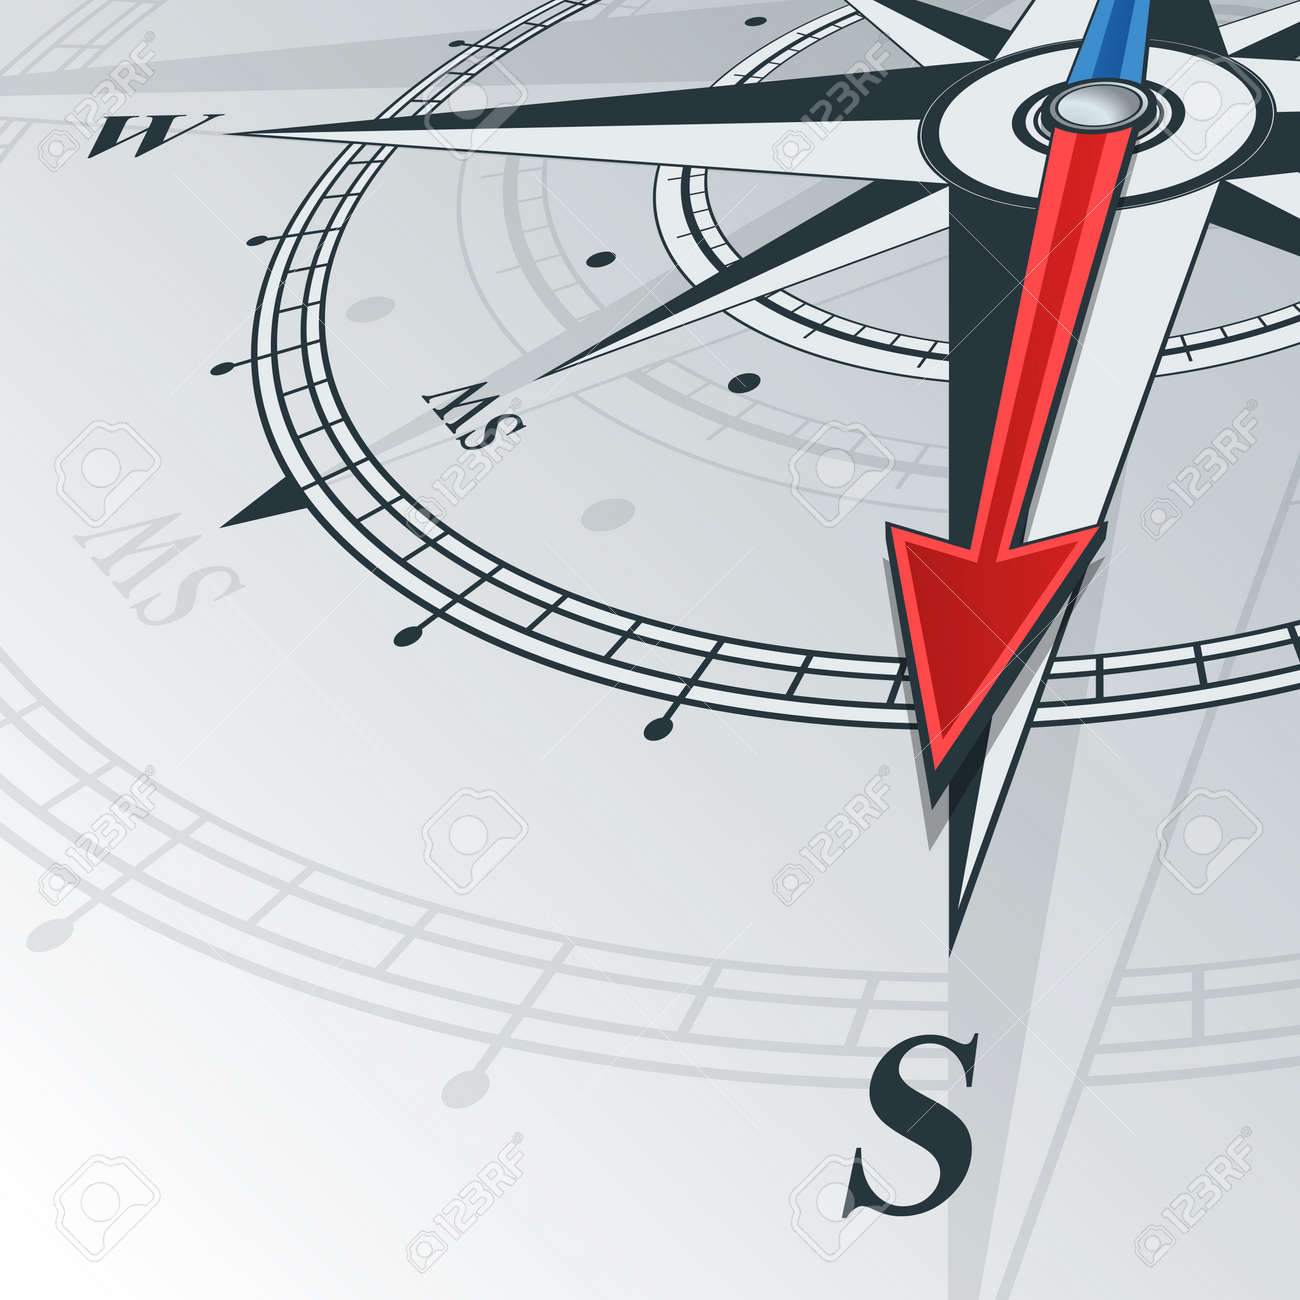 43820275-Compass-with-wind-rose-the-arrow-points-to-the-south-Illustrations--Stock-Photo.jpg